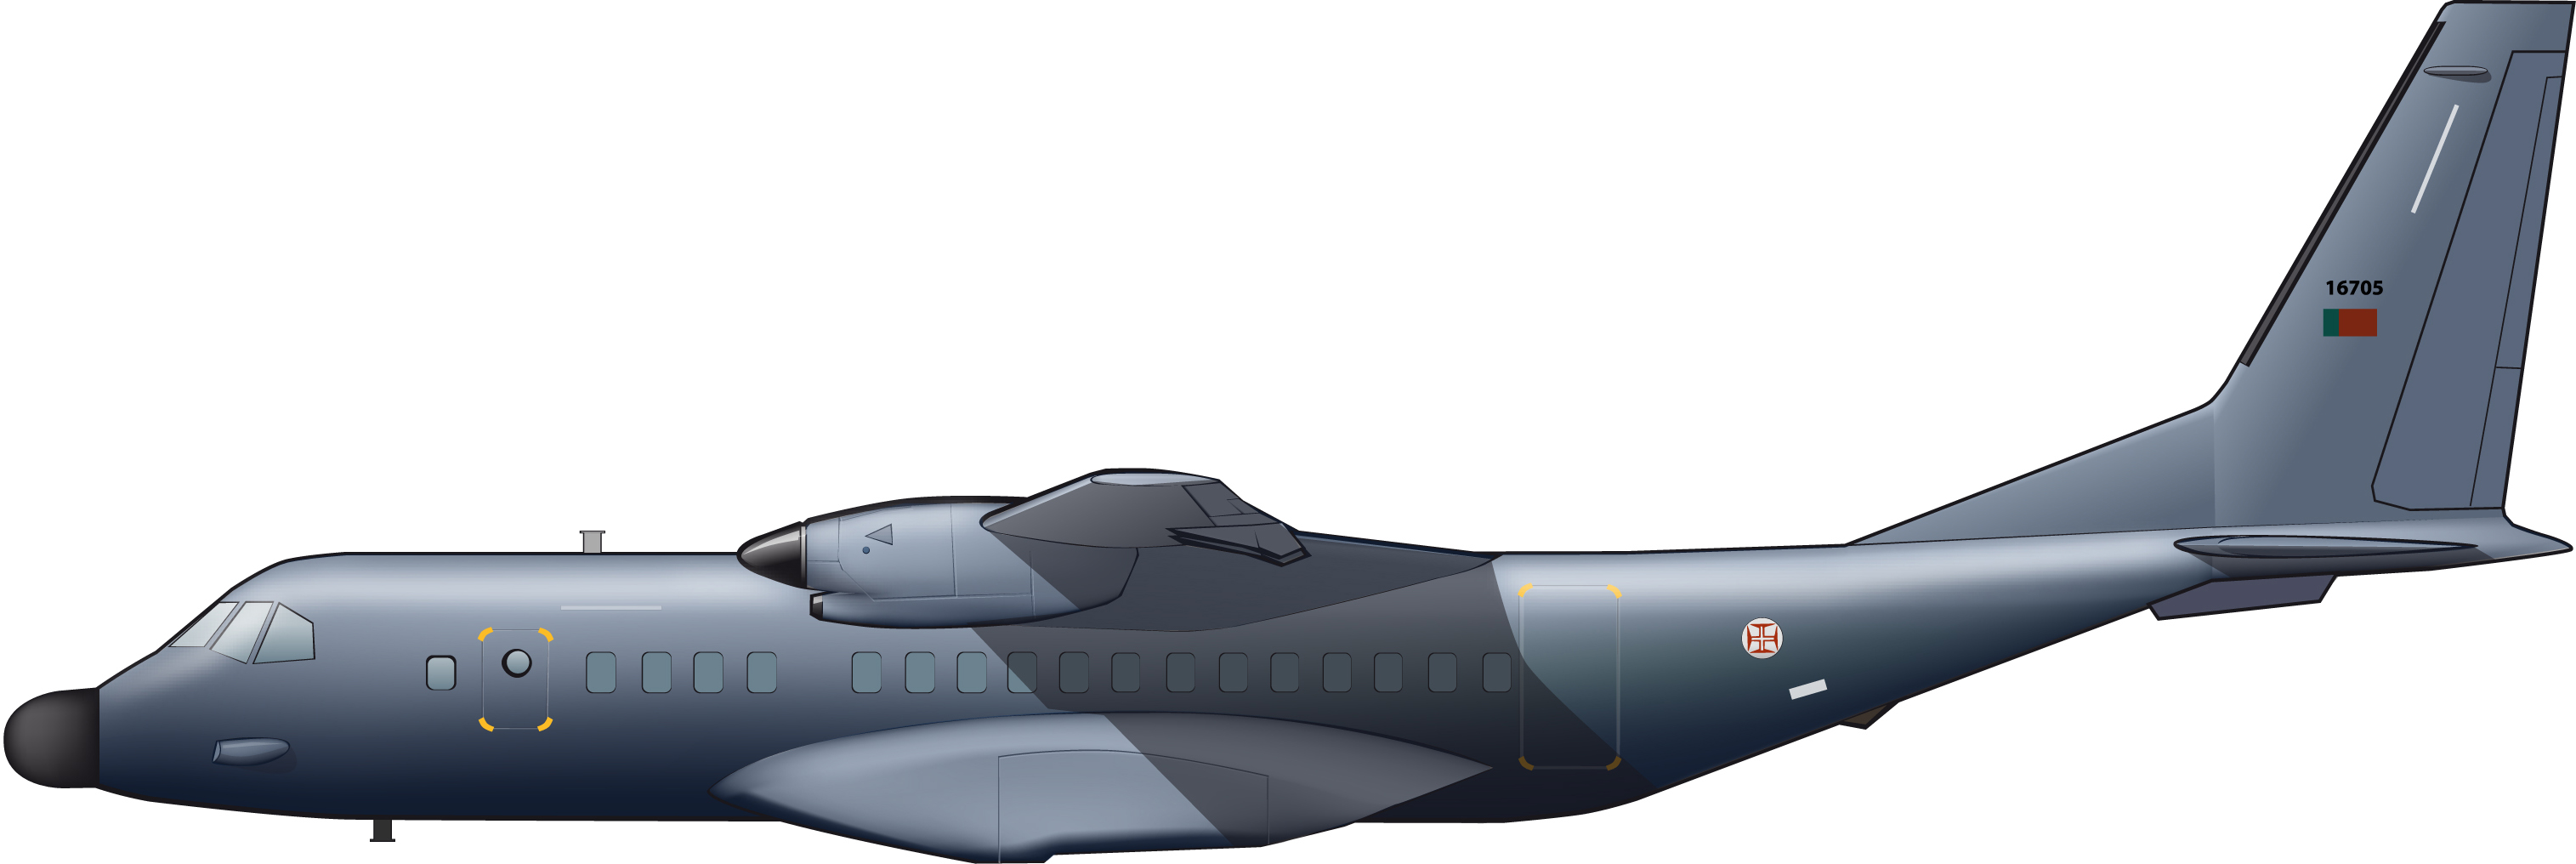 cn235ejercitodelaire